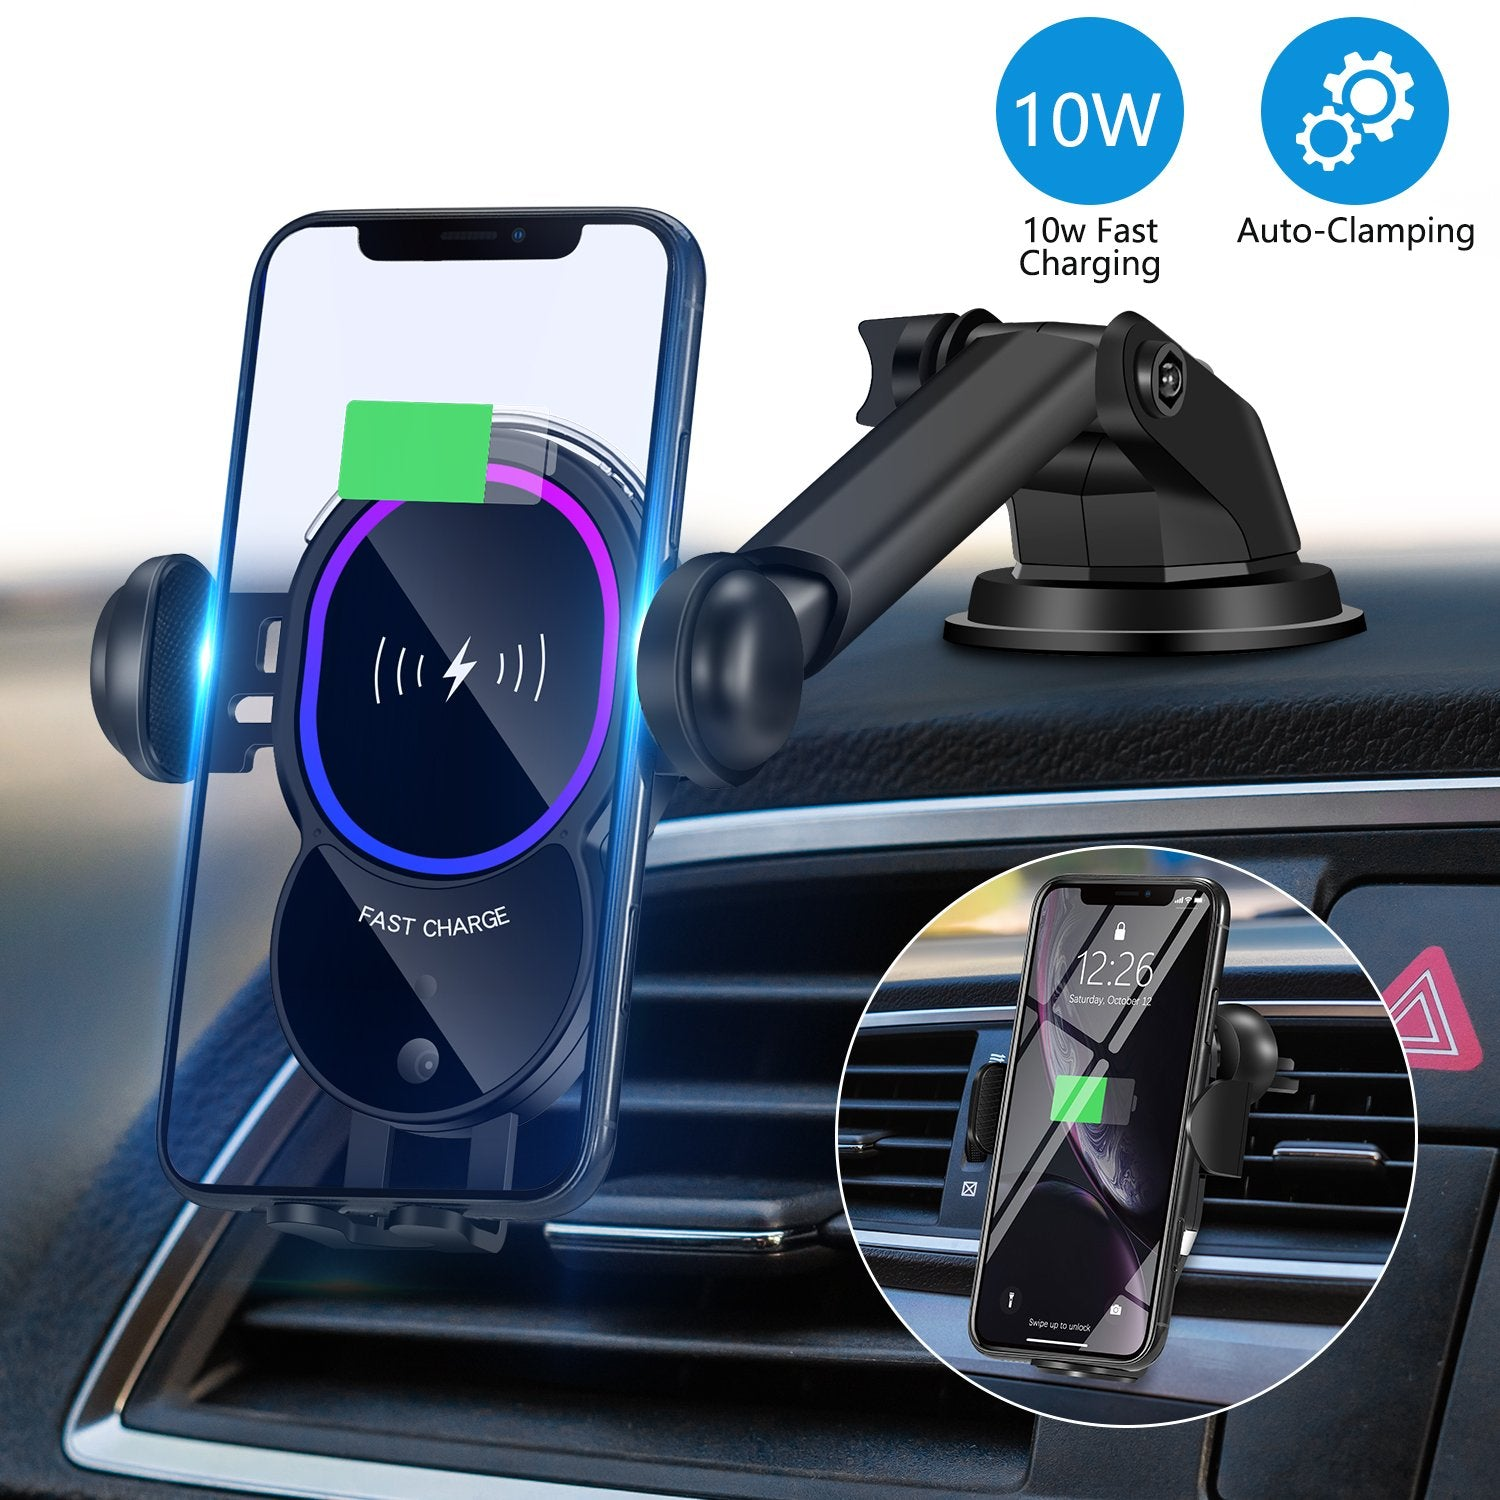 WALOTAR Wireless Car Charger, Triangle Linkage Auto-Clamping 10W Qi Fast Car Phone Mount Dashbroad Windshield Air Vent Holder Compatible with iPhone 11 Pro Max Xs XR X 8,Samsung S10 S9 S8 Note 10 etc